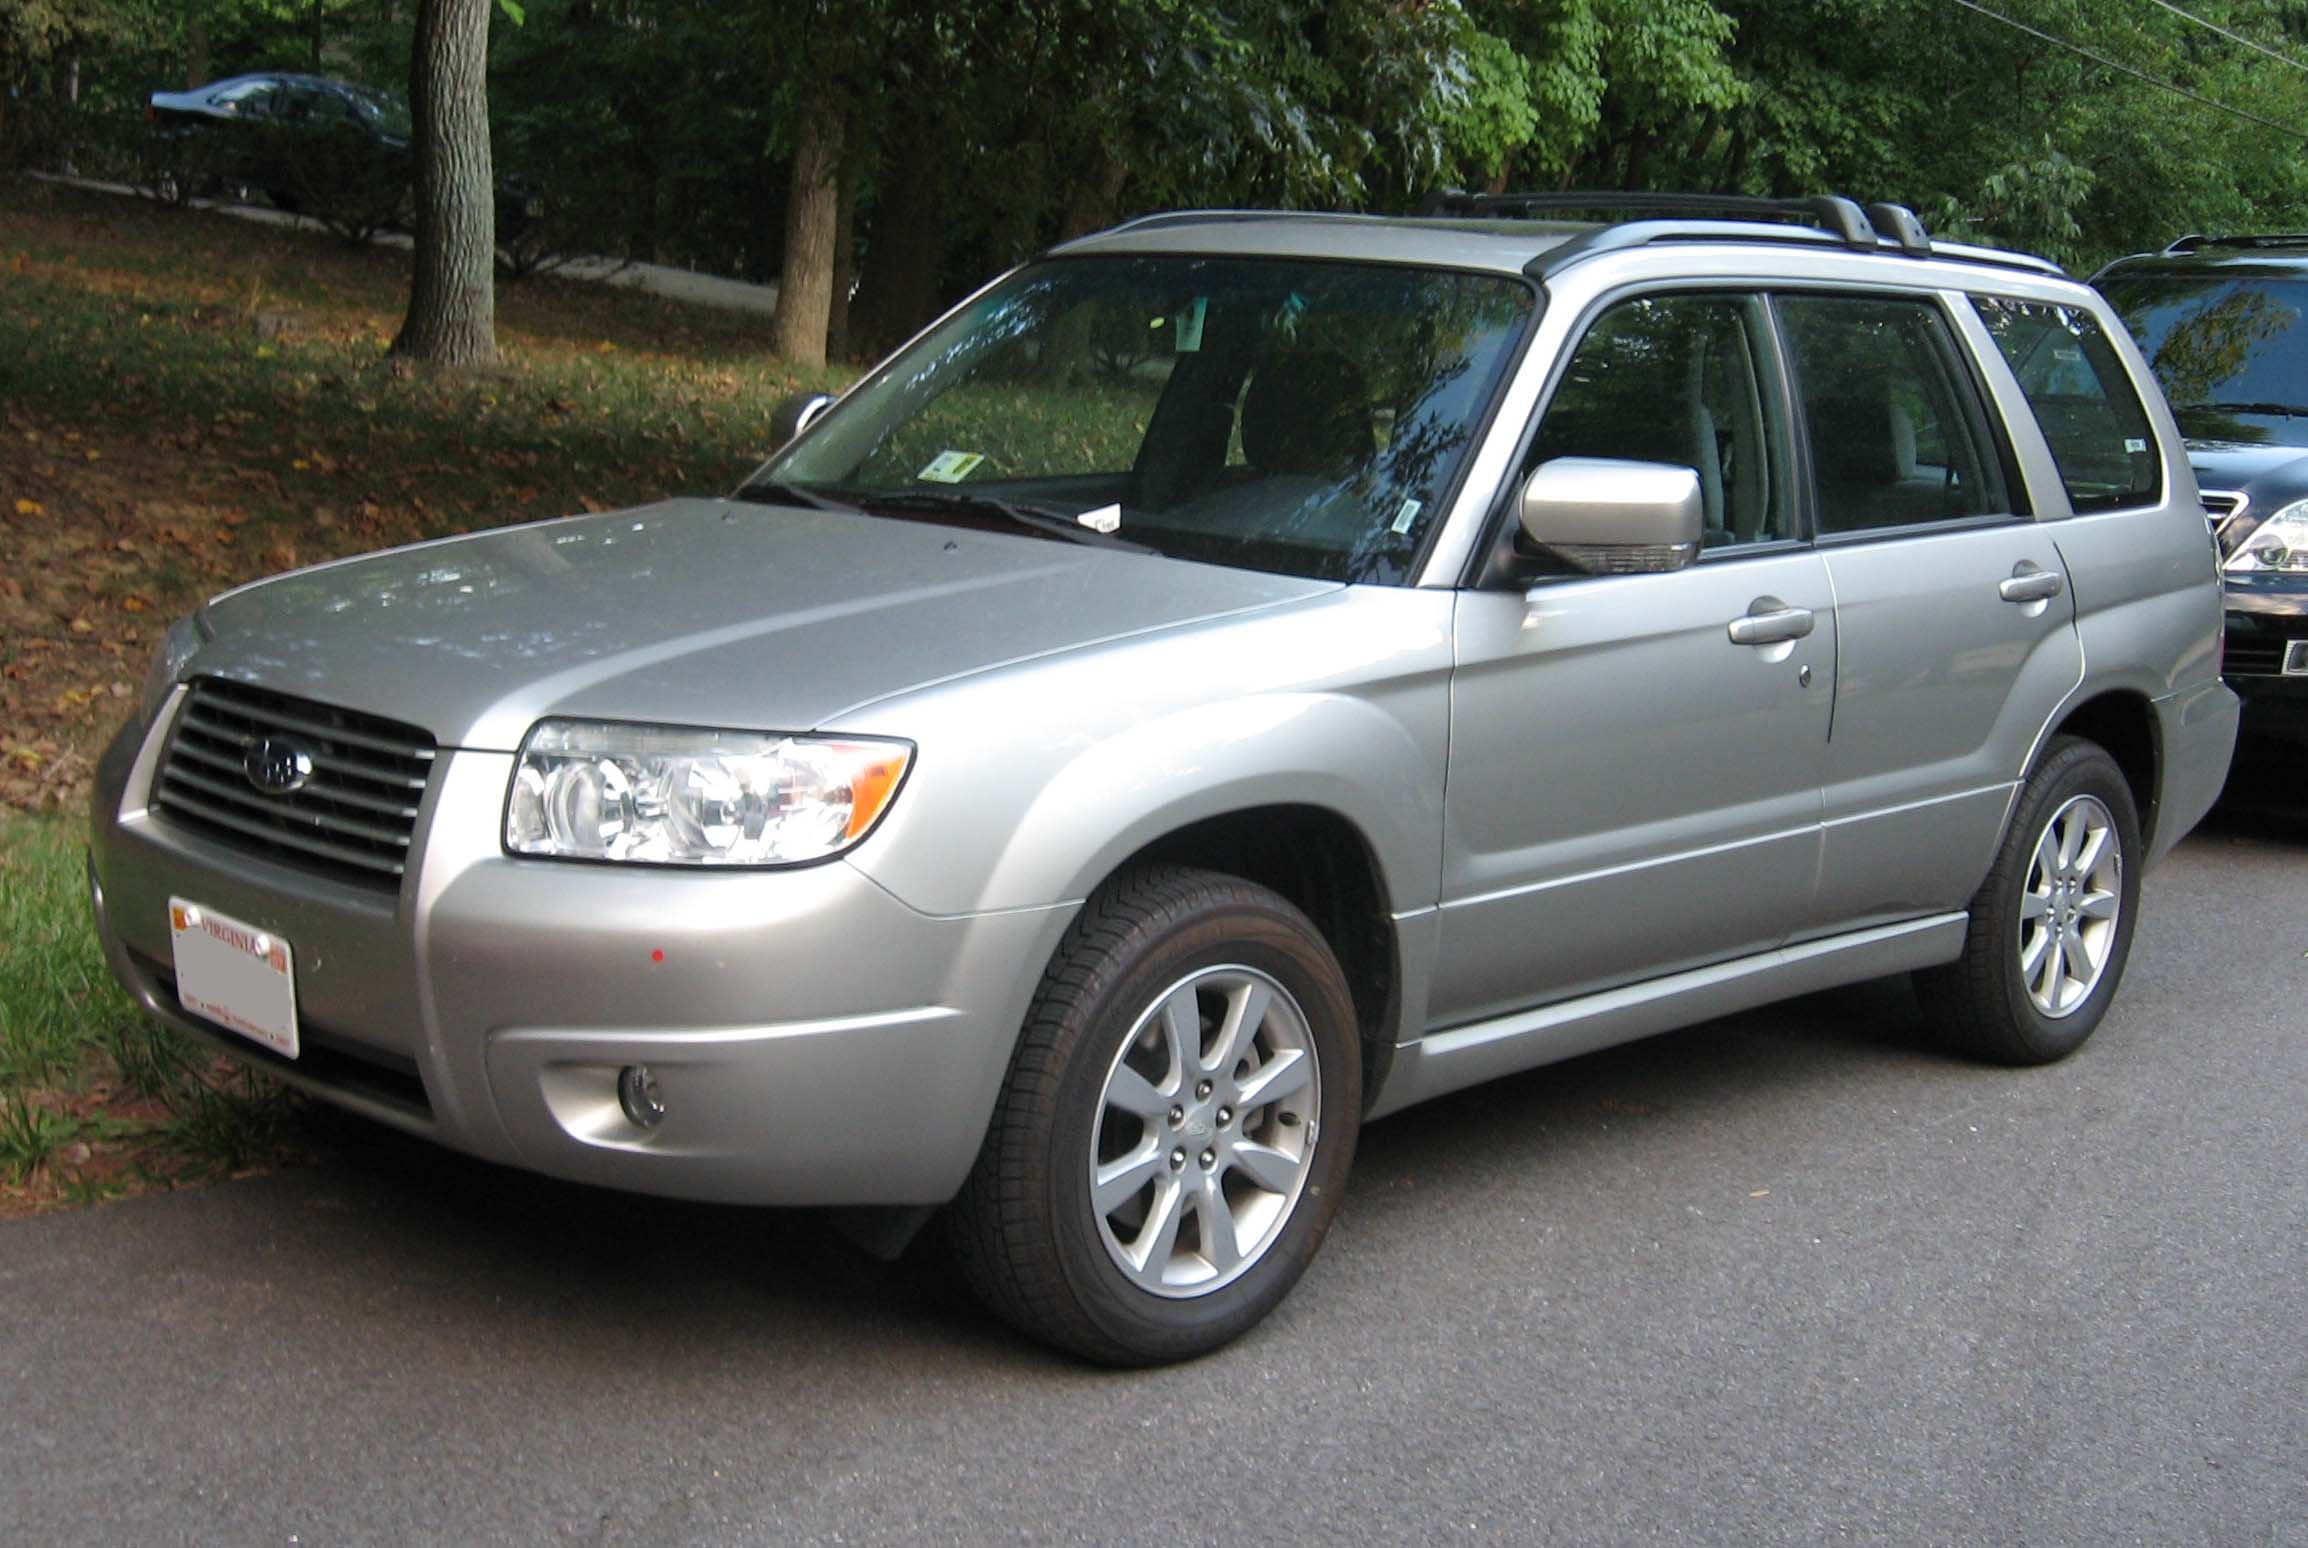 File:06-07 Subaru Forester XS.jpg - Wikimedia Commons